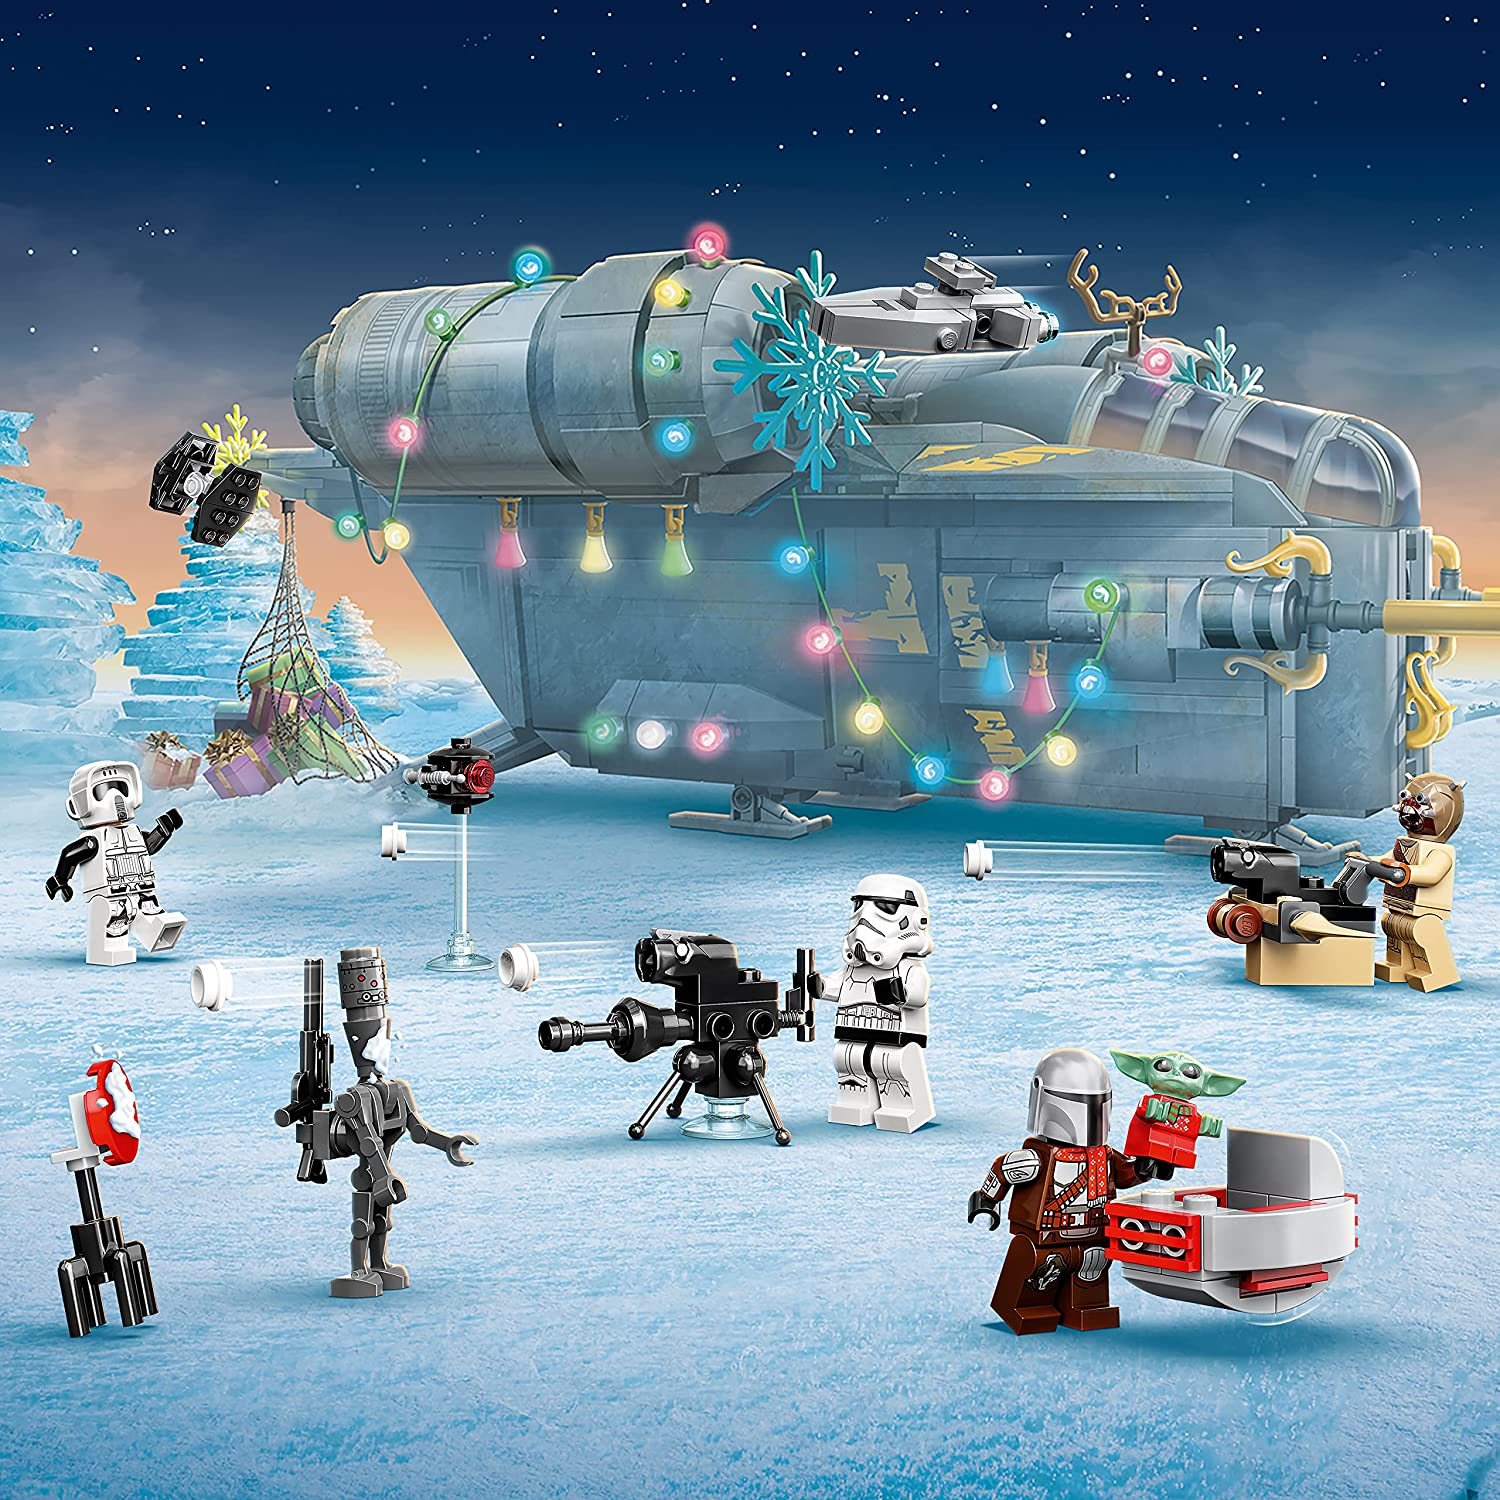 Time to order your 2021 LEGO Star Wars advent calendar